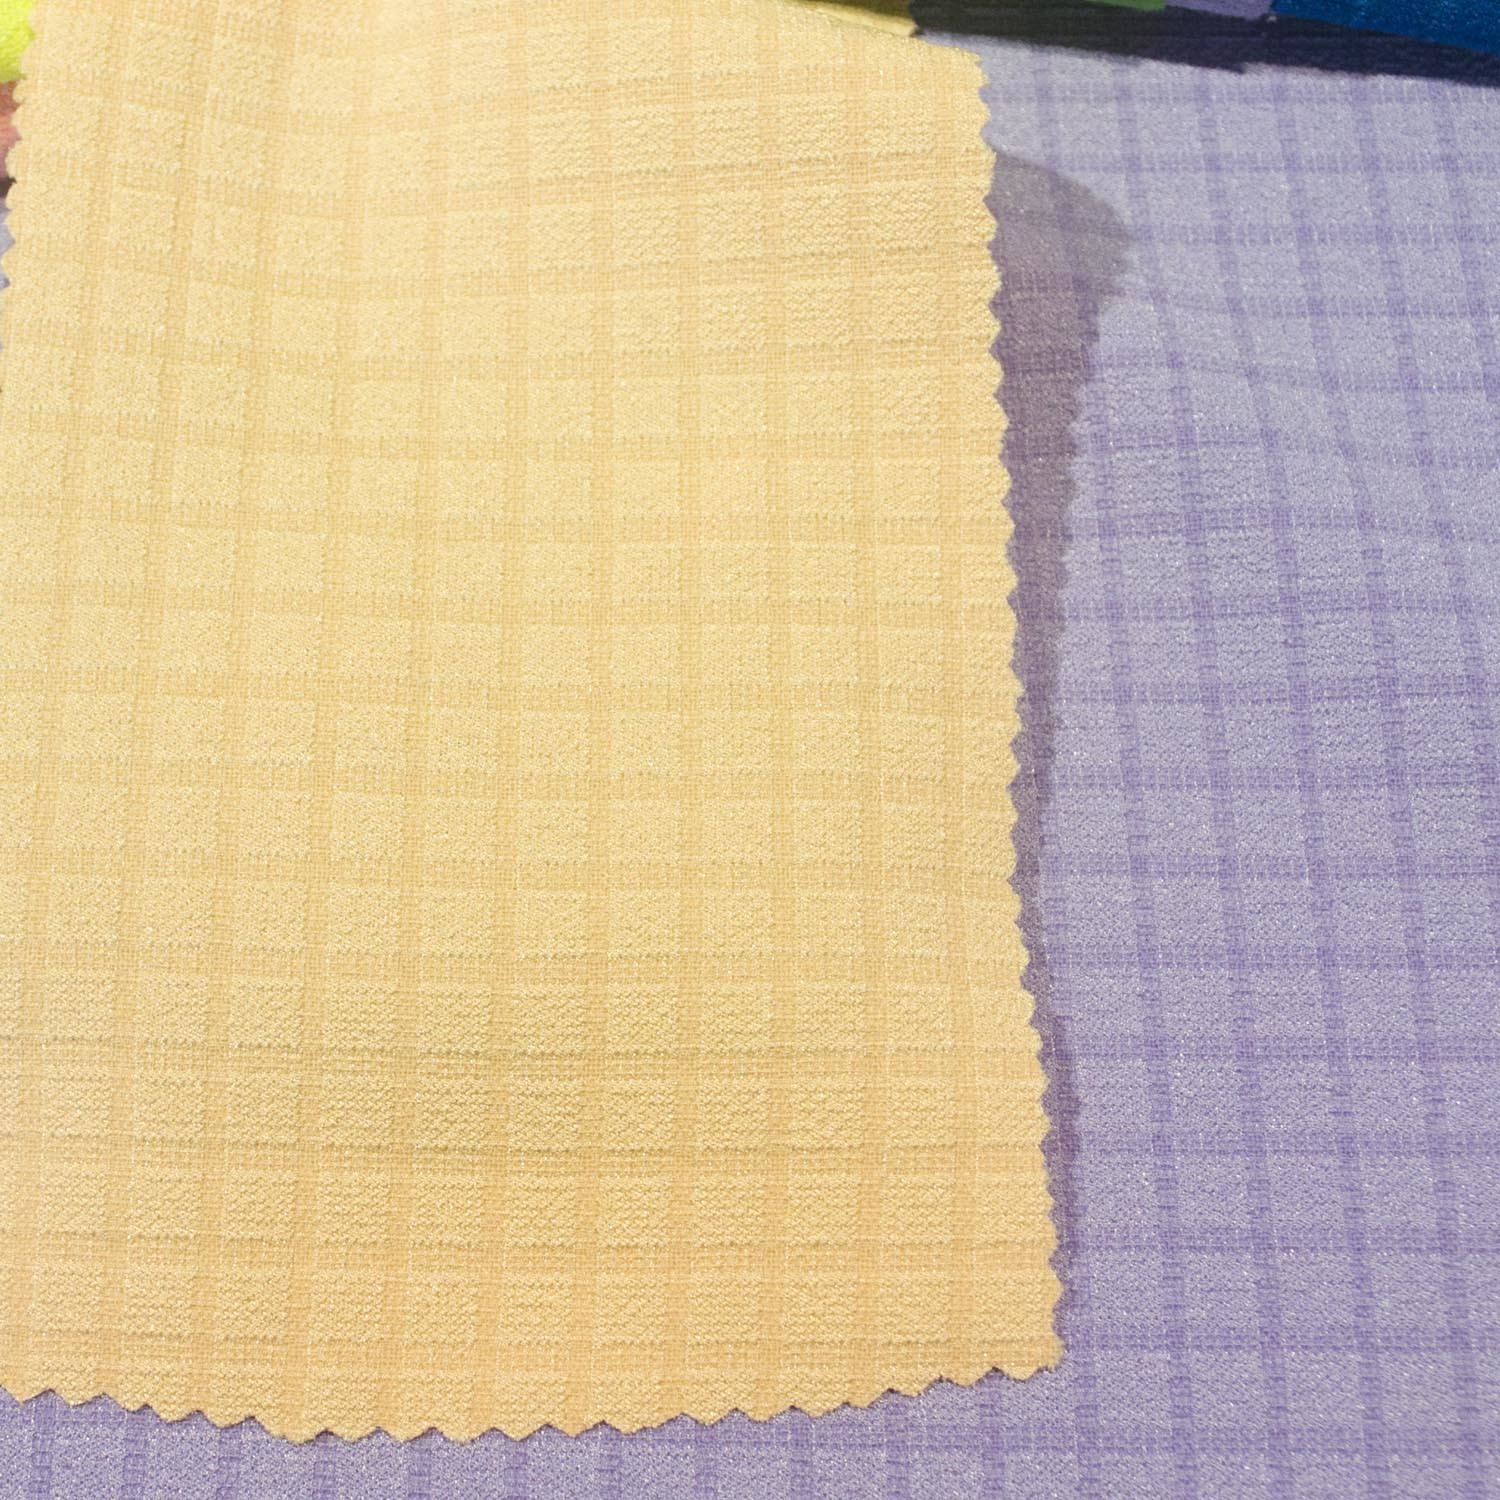 Chemical Fiber Dyed Spandex Polyester Fabric for Dress Shirt Skirt